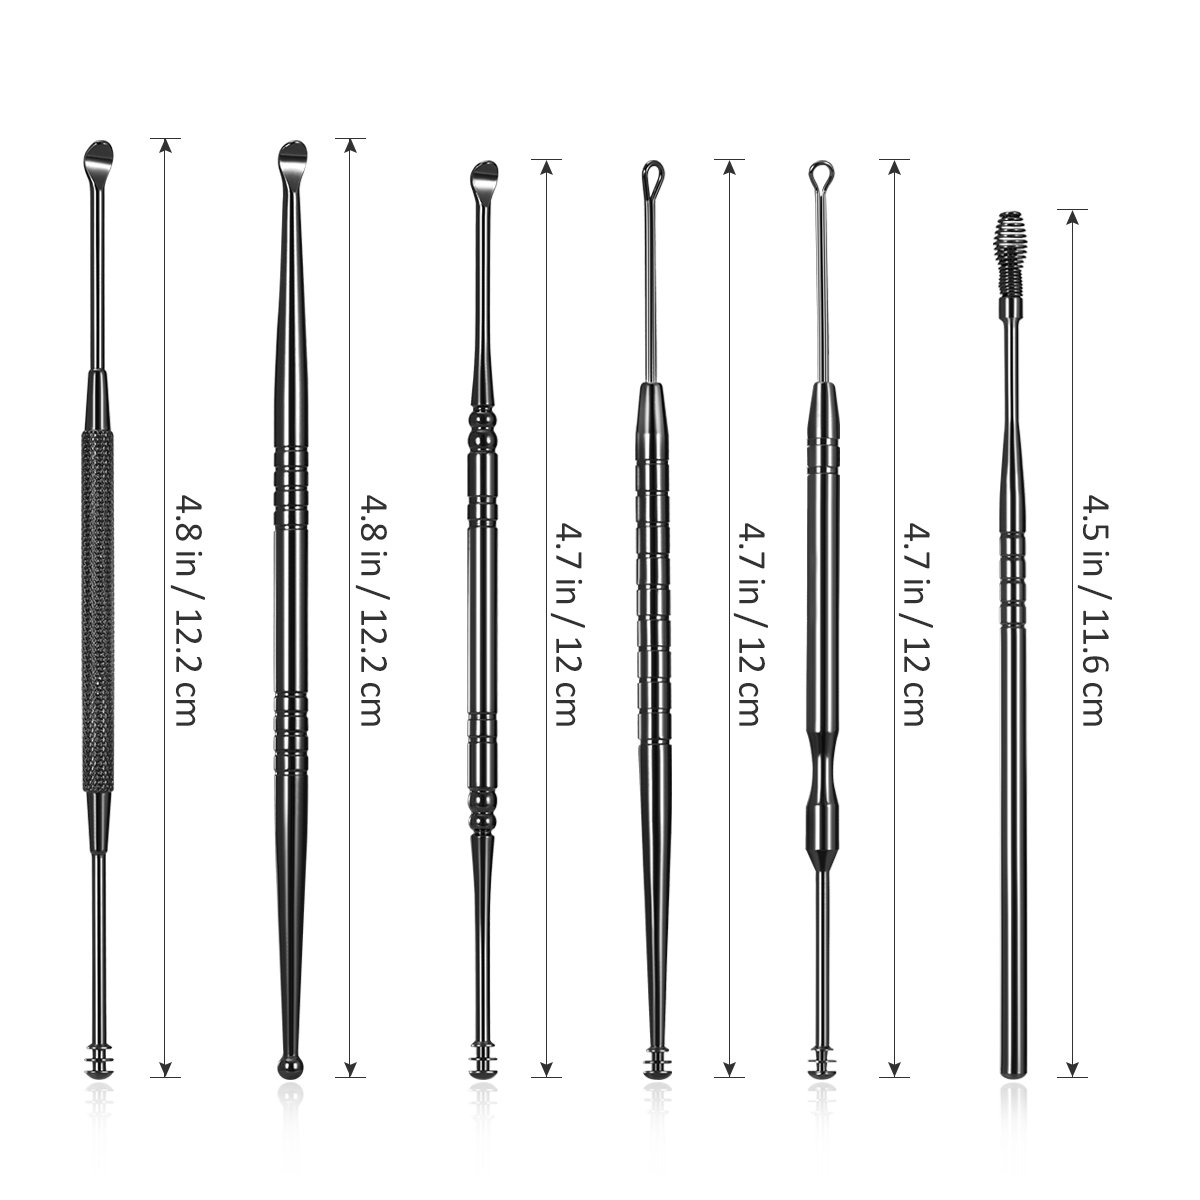 6PCS Stainless Steel Ear Wax Removal Curette Cleaner Health Ear Care